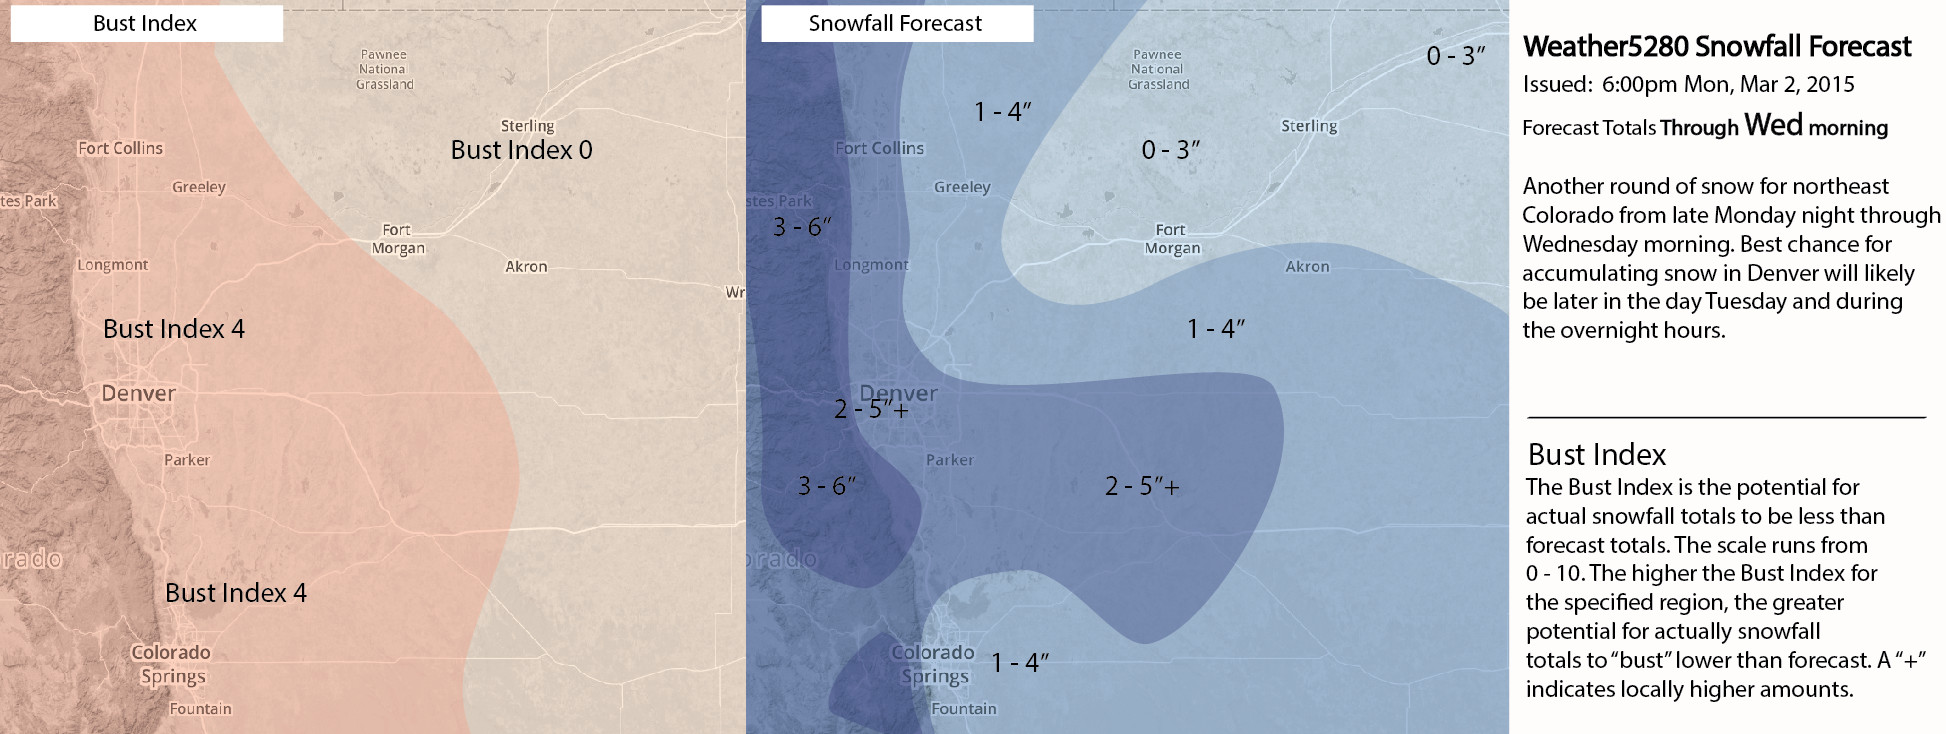 Weather5280 Snowf Forecast